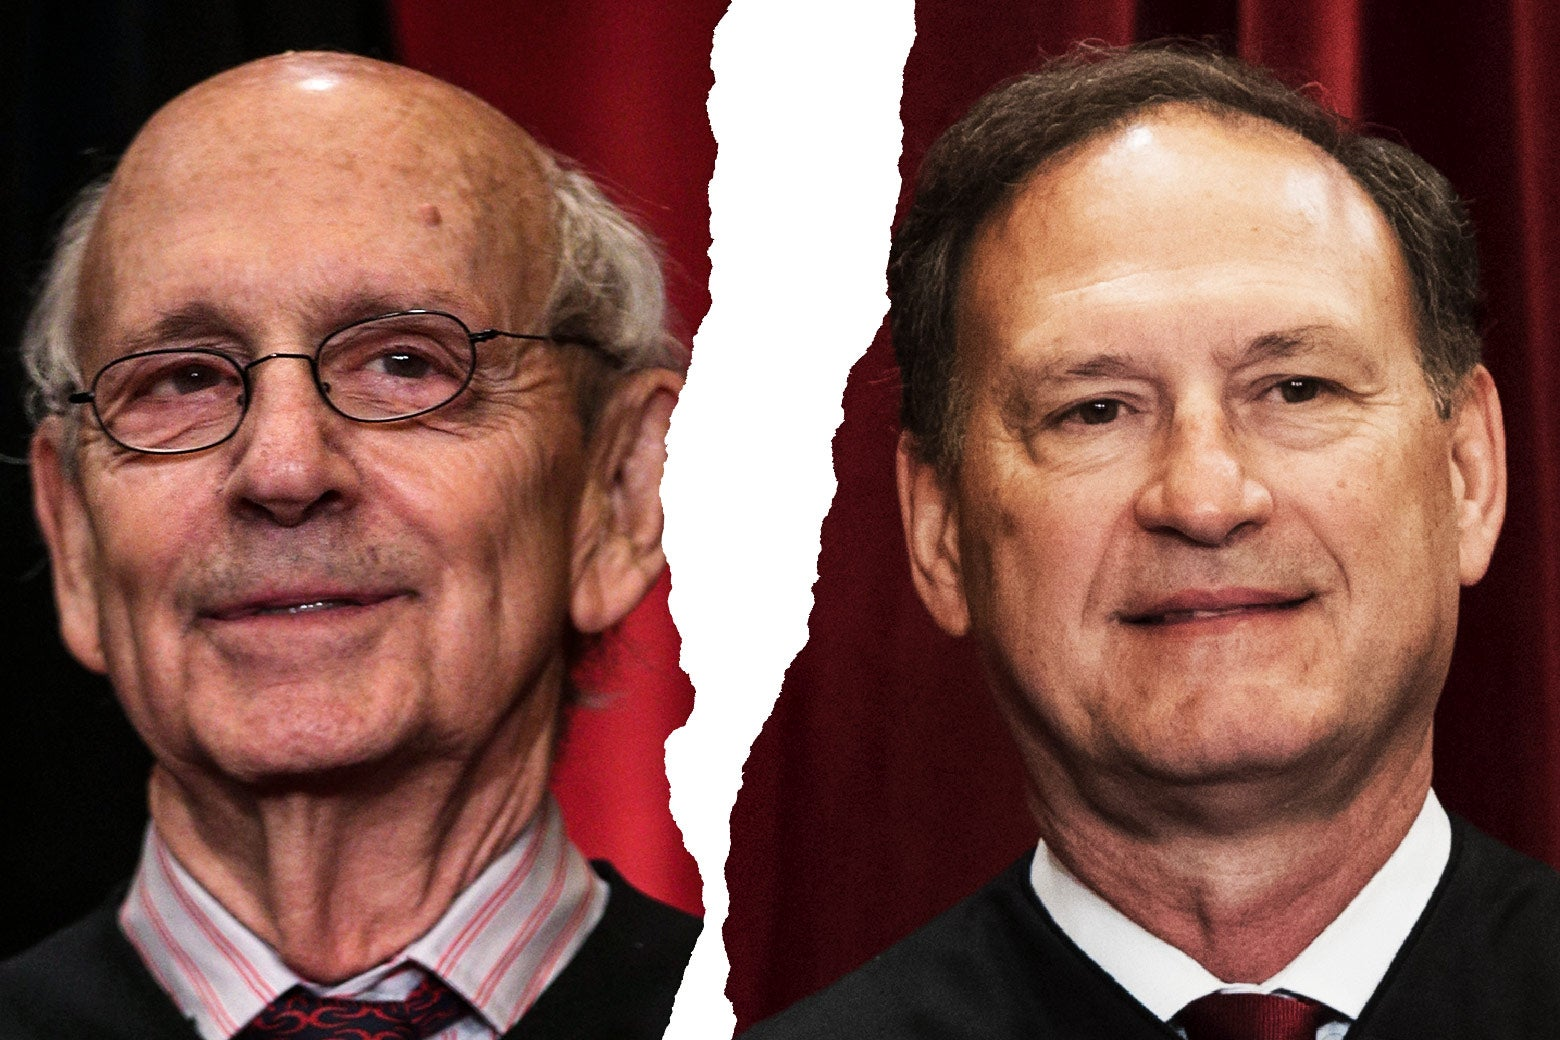 U.S. Supreme Court Associate Justice Stephen Breyer and Associate Justice Samuel Alito Jr.